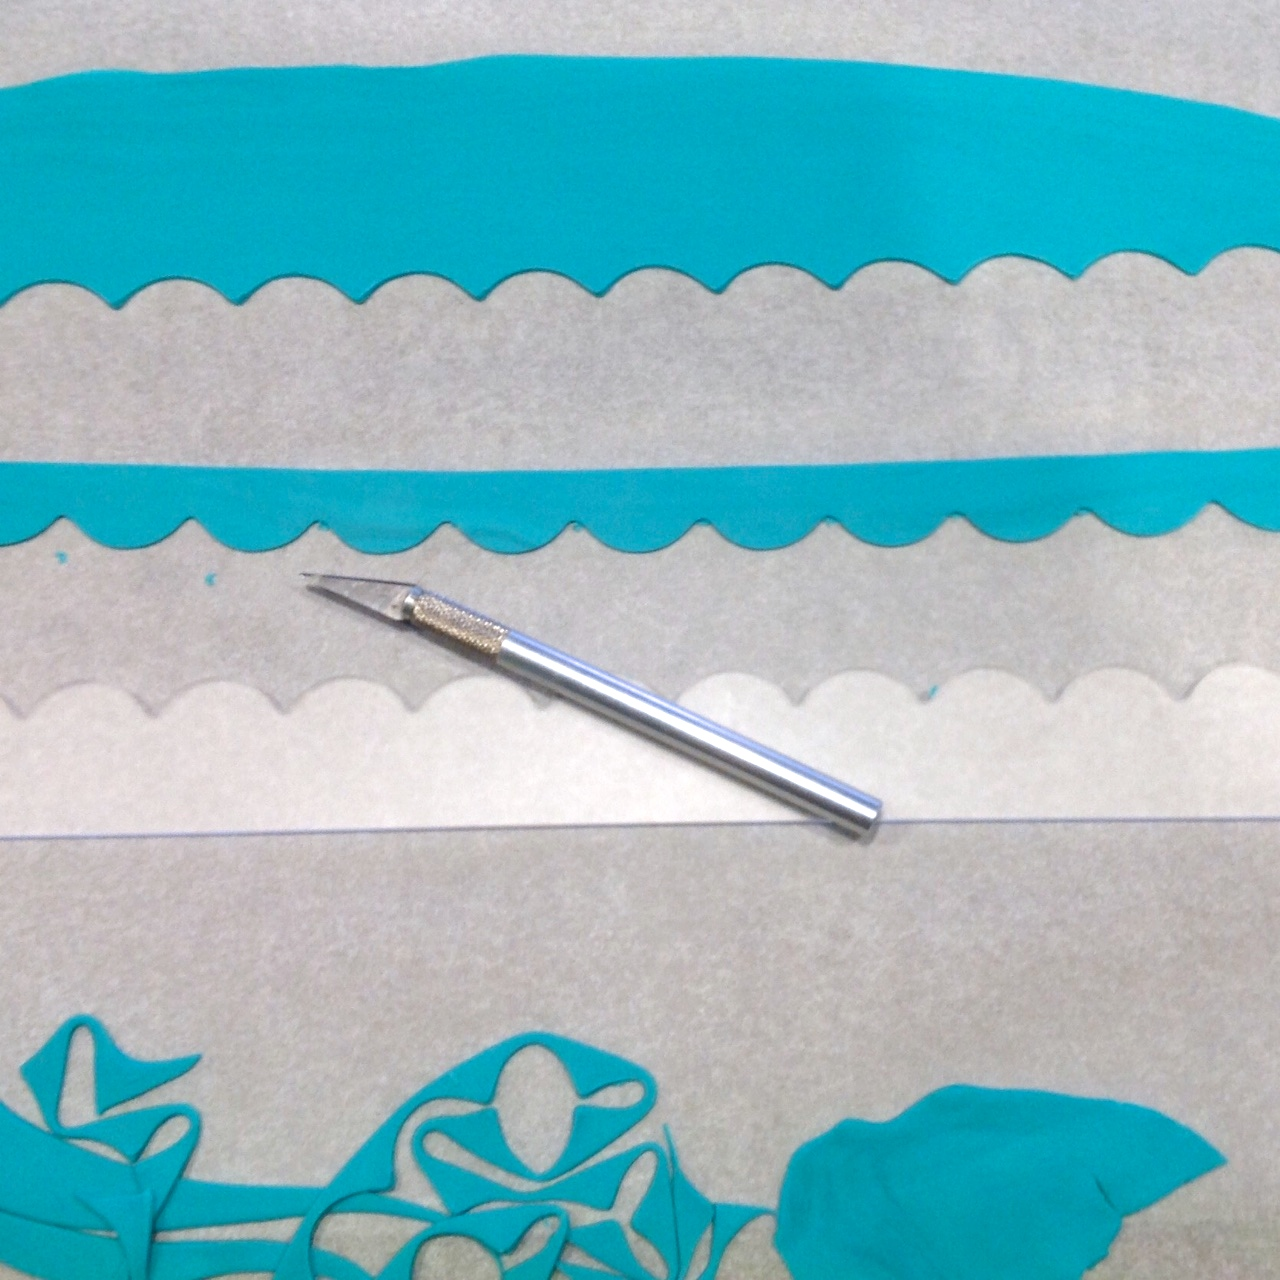 Scallop acrylic template - how to #2 - CutterCraft